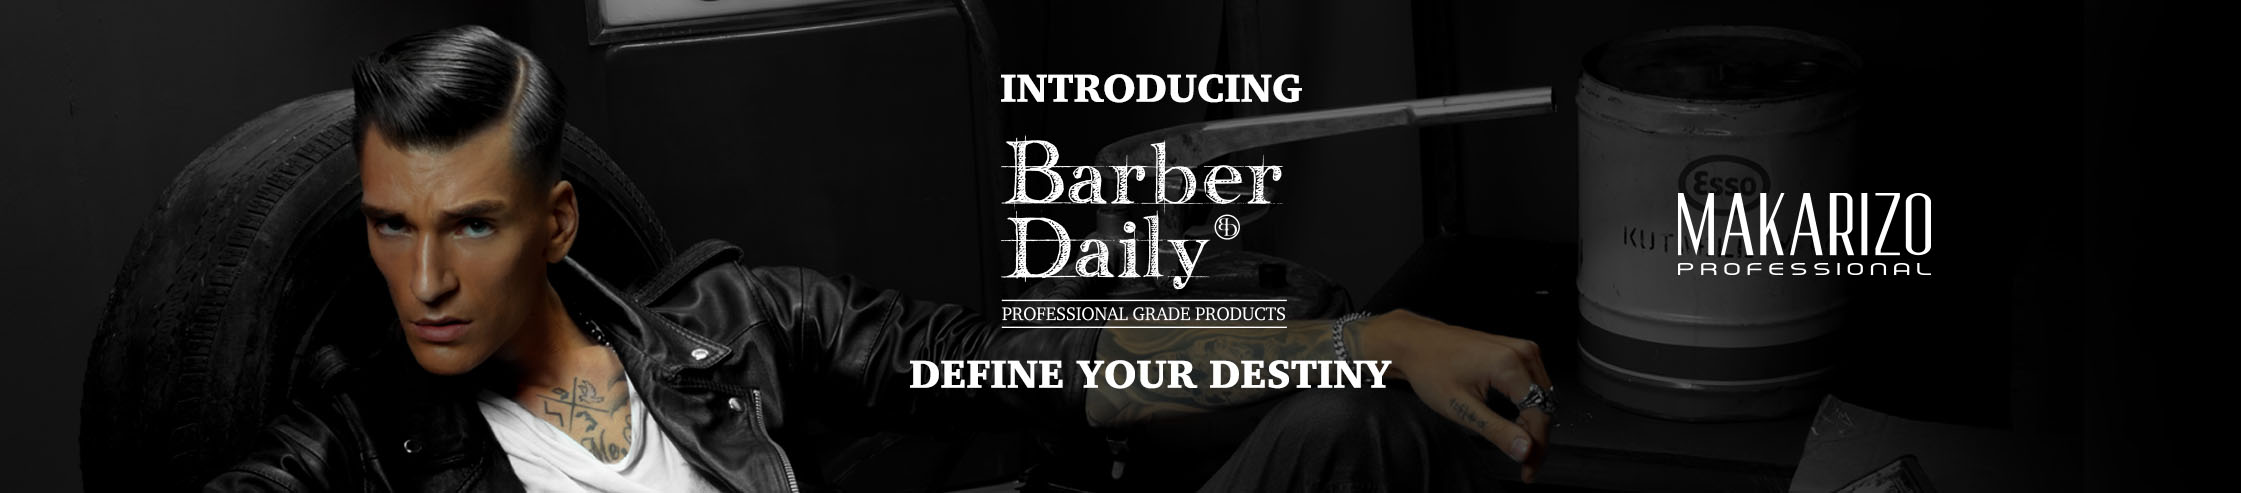 barber daily